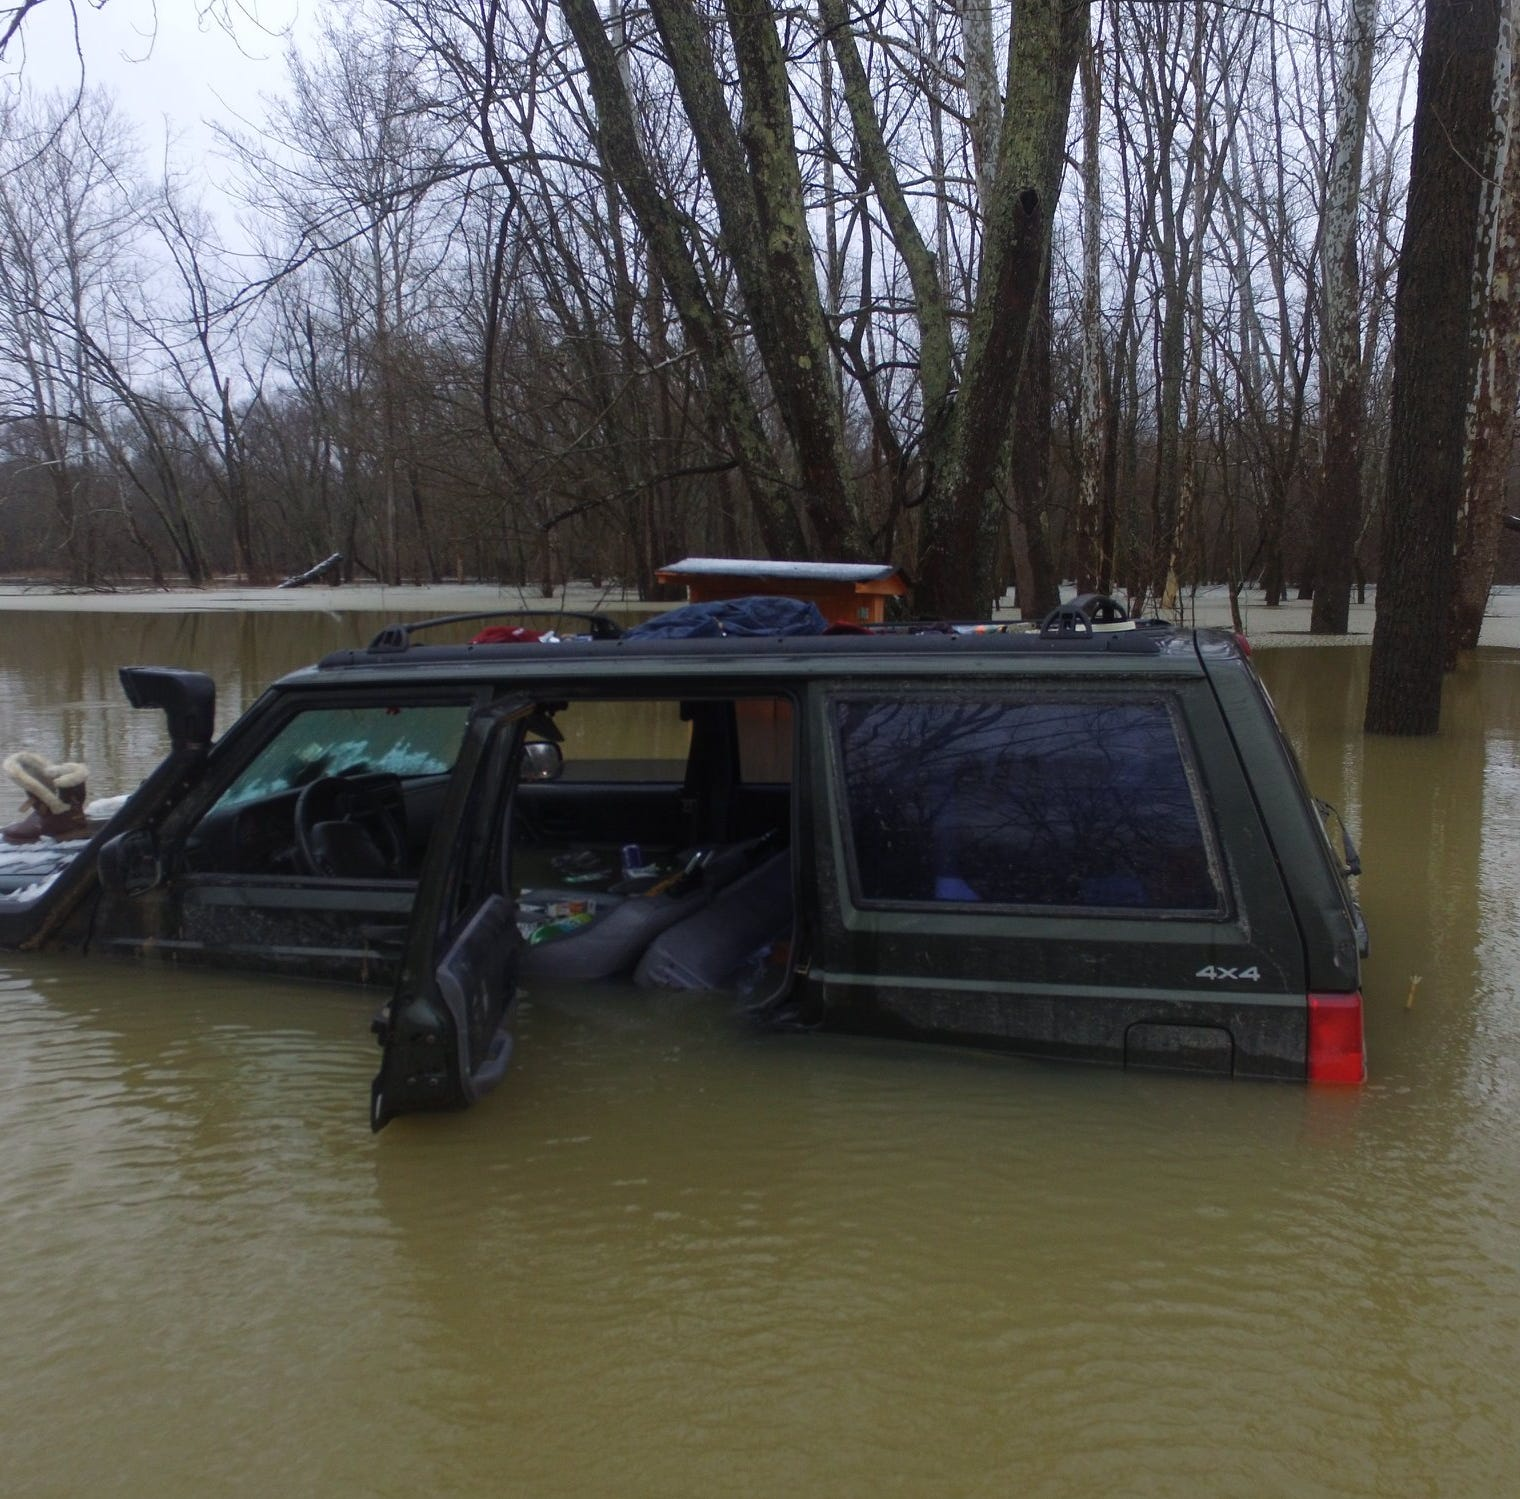 They spent the night stranded atop a Jeep after getting stranded in a flood